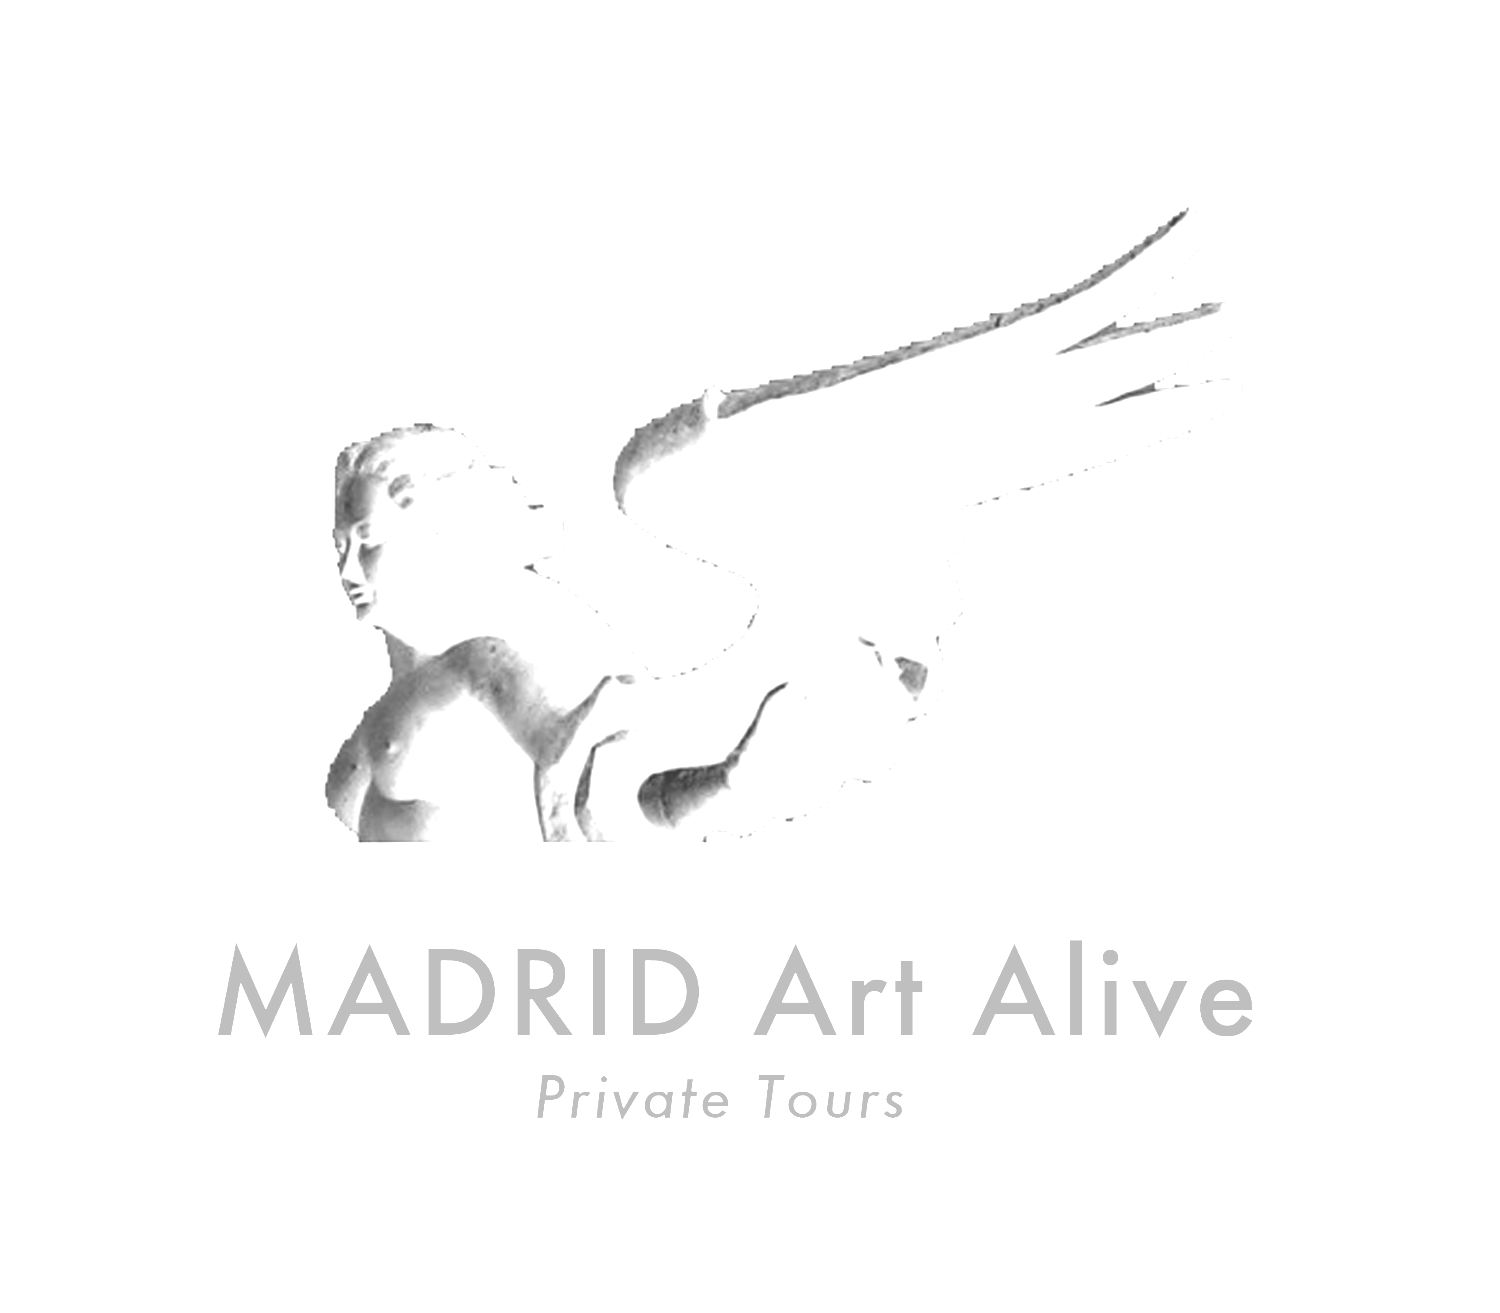 MADRID Art Alive